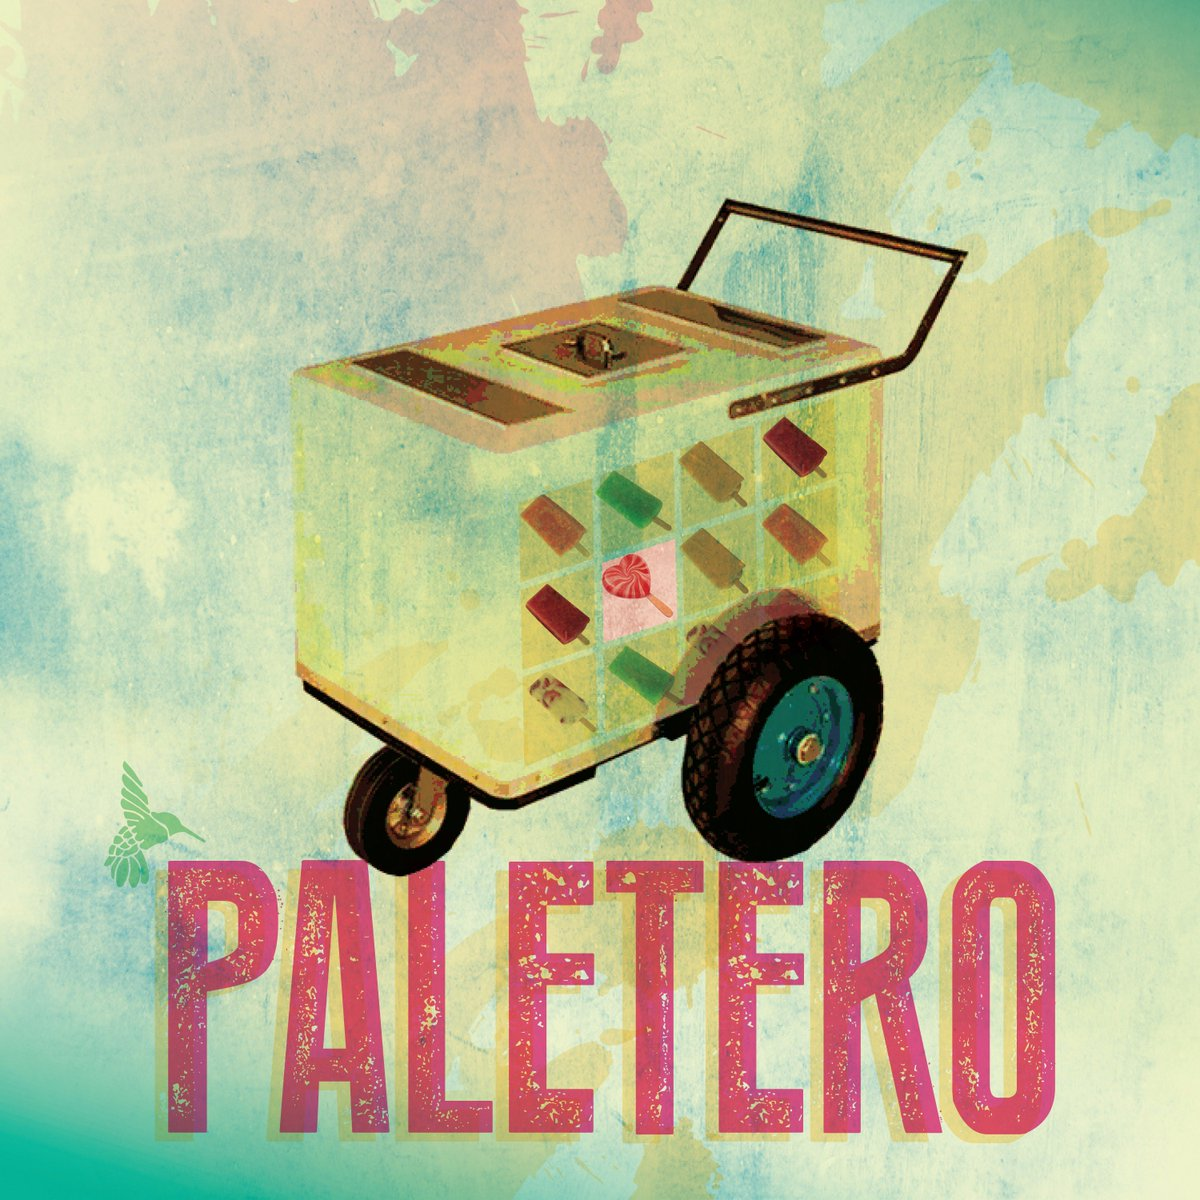 Las Cafeteras On Twitter Listen To Our New Single Paletero Here